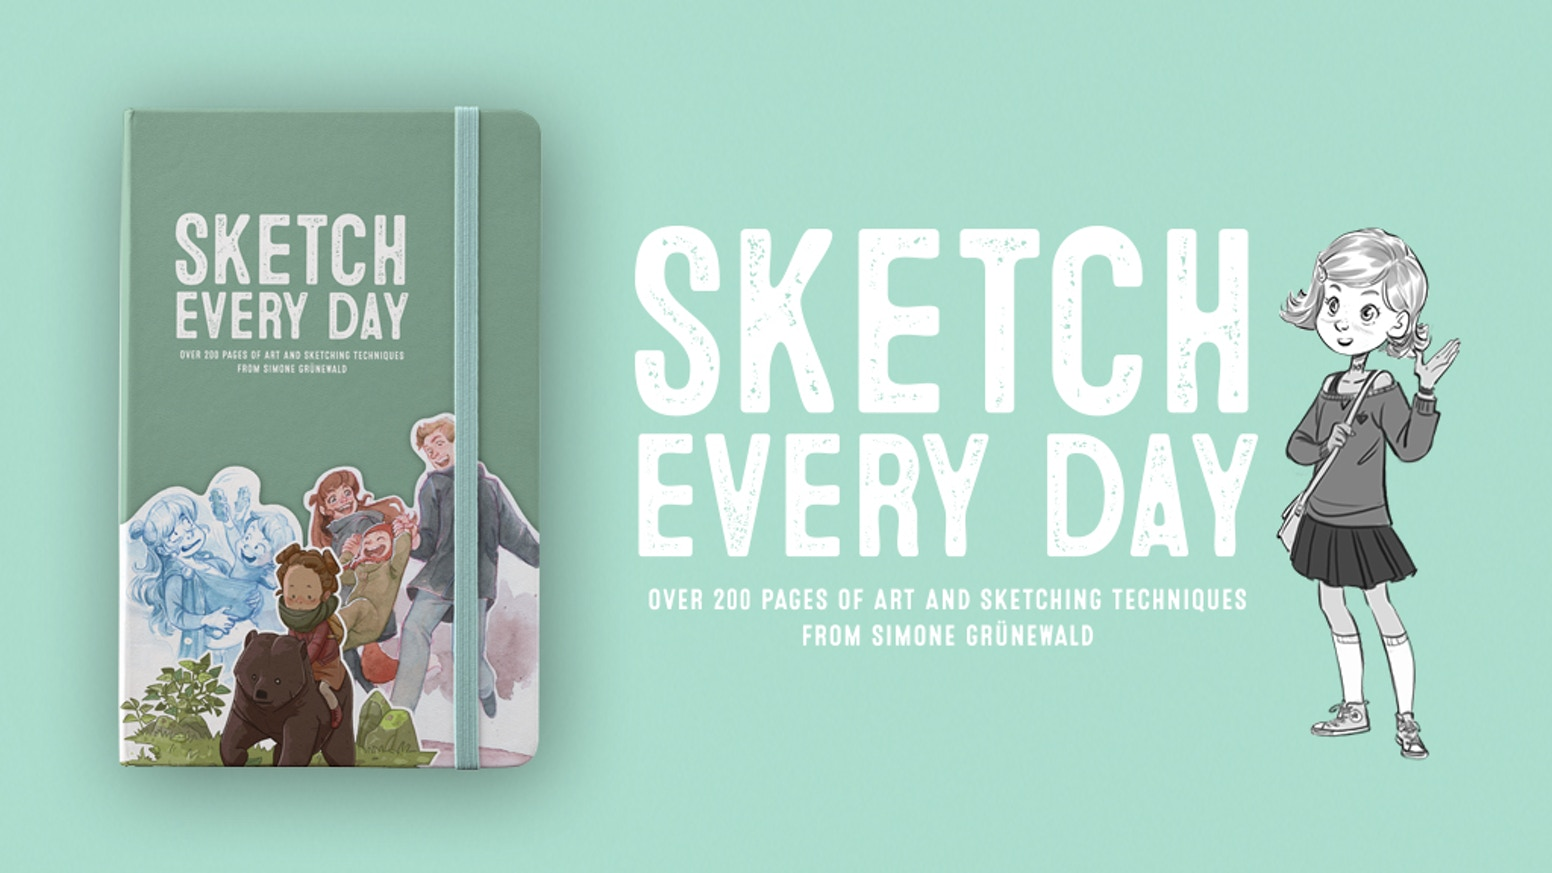 Over 200 pages of art and sketching techniques from Simone Grünewald.